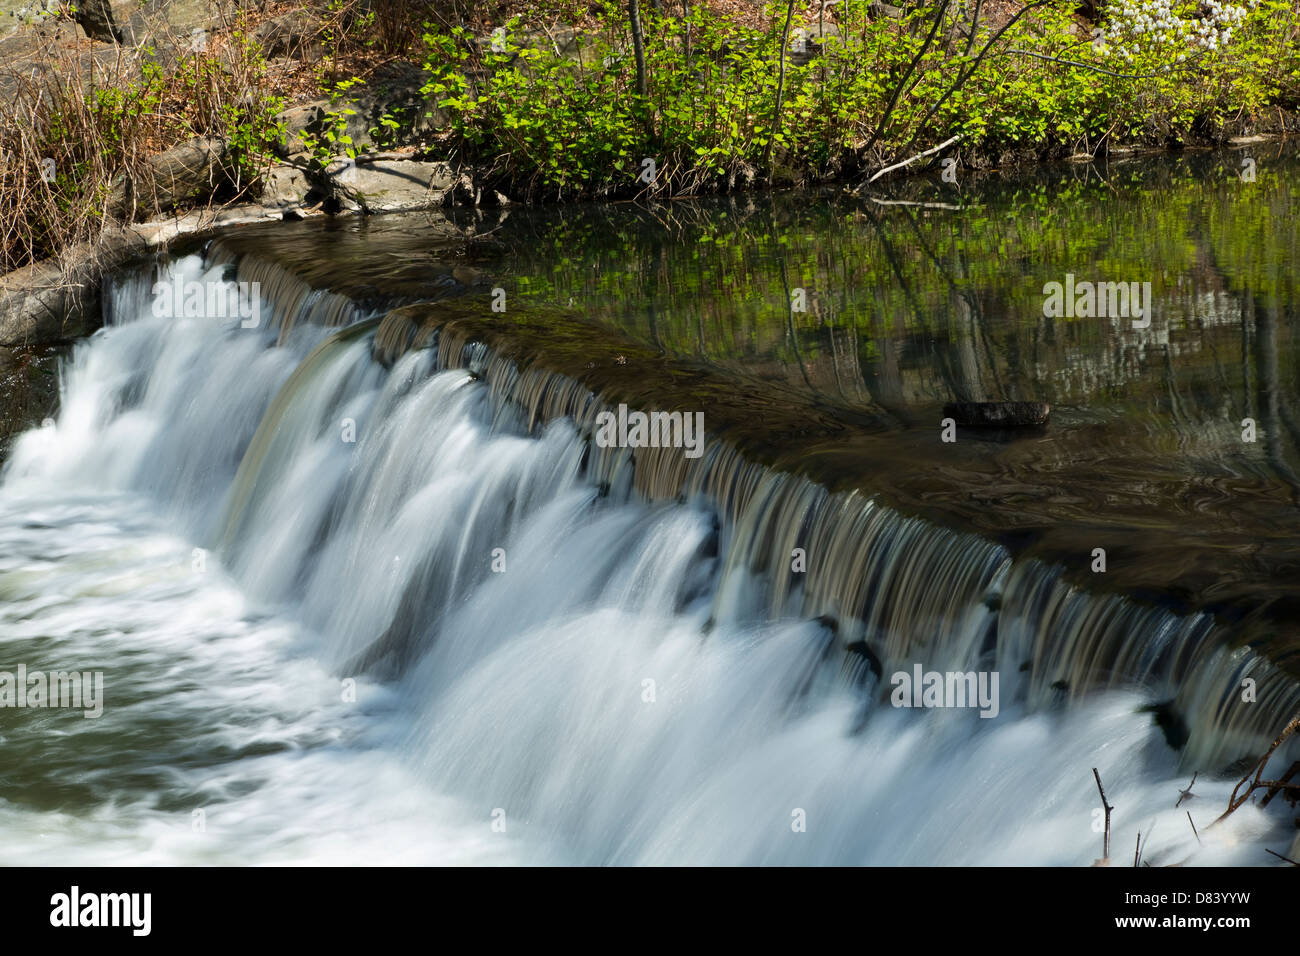 Time Lapse Waterfall and Stream (soft motion blur) - Stock Image